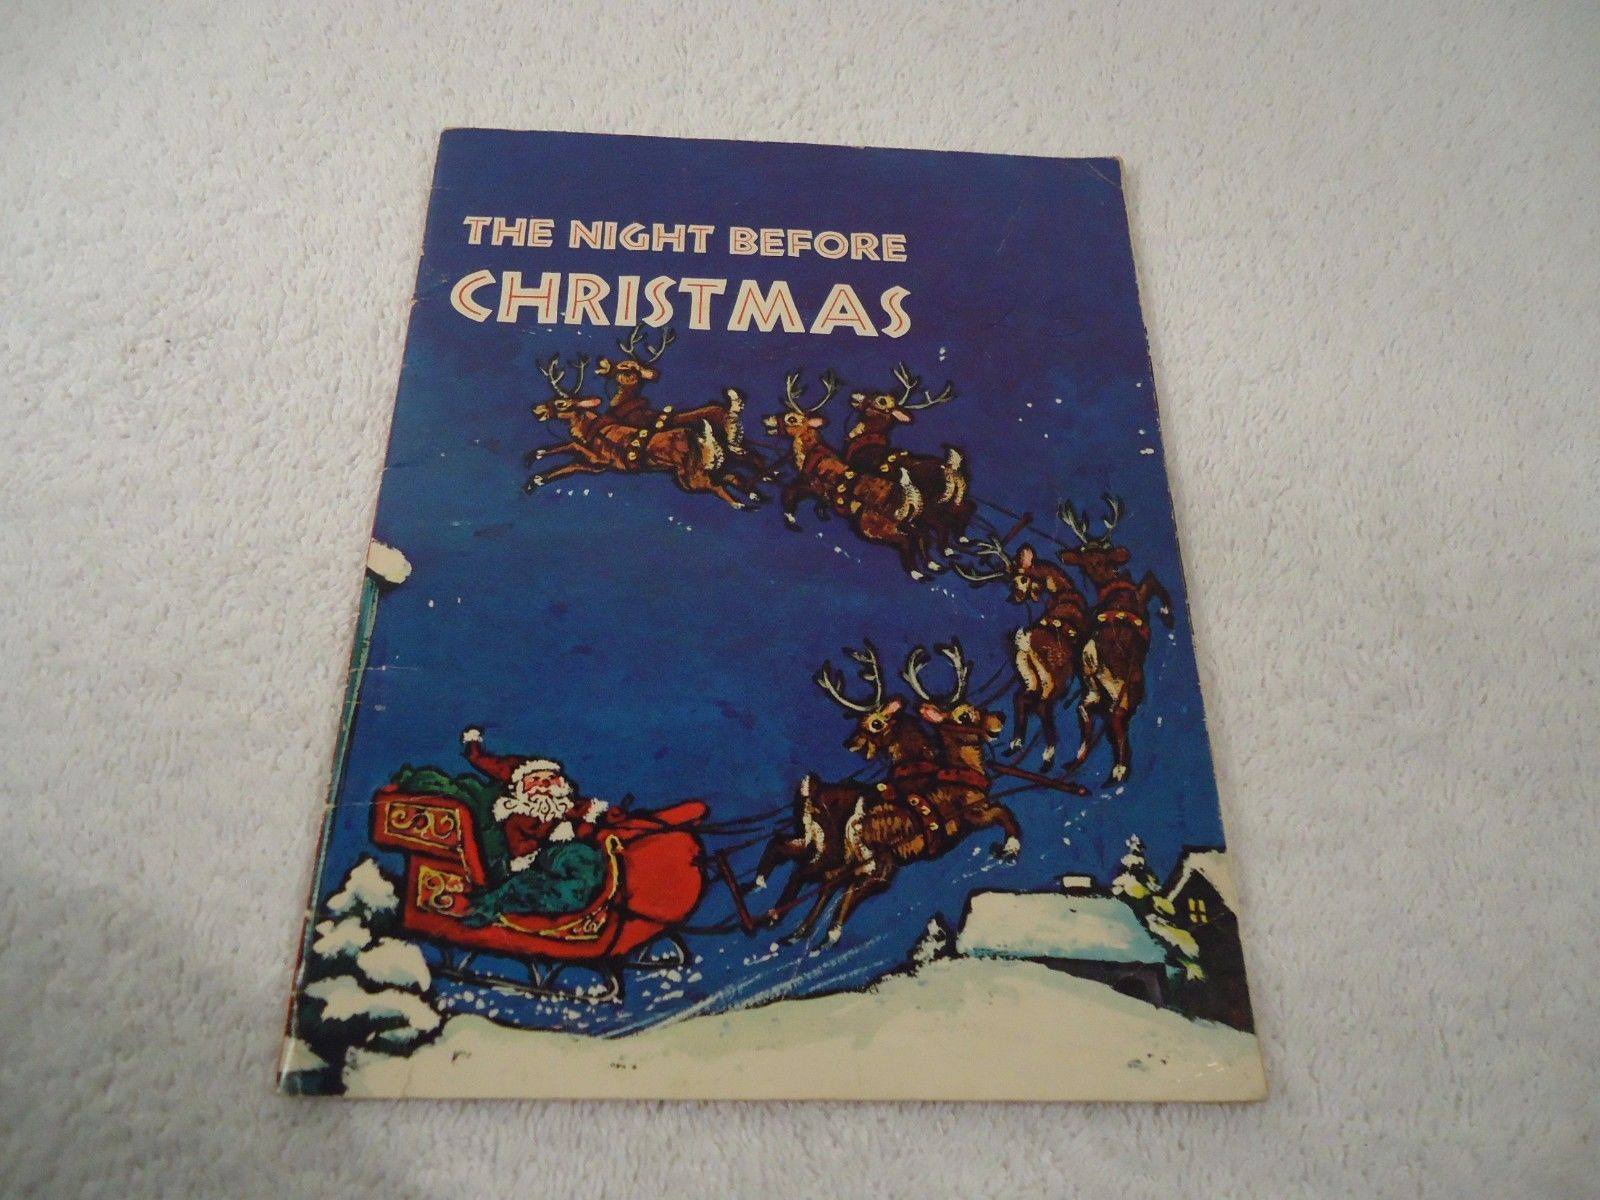 Christmas record and book